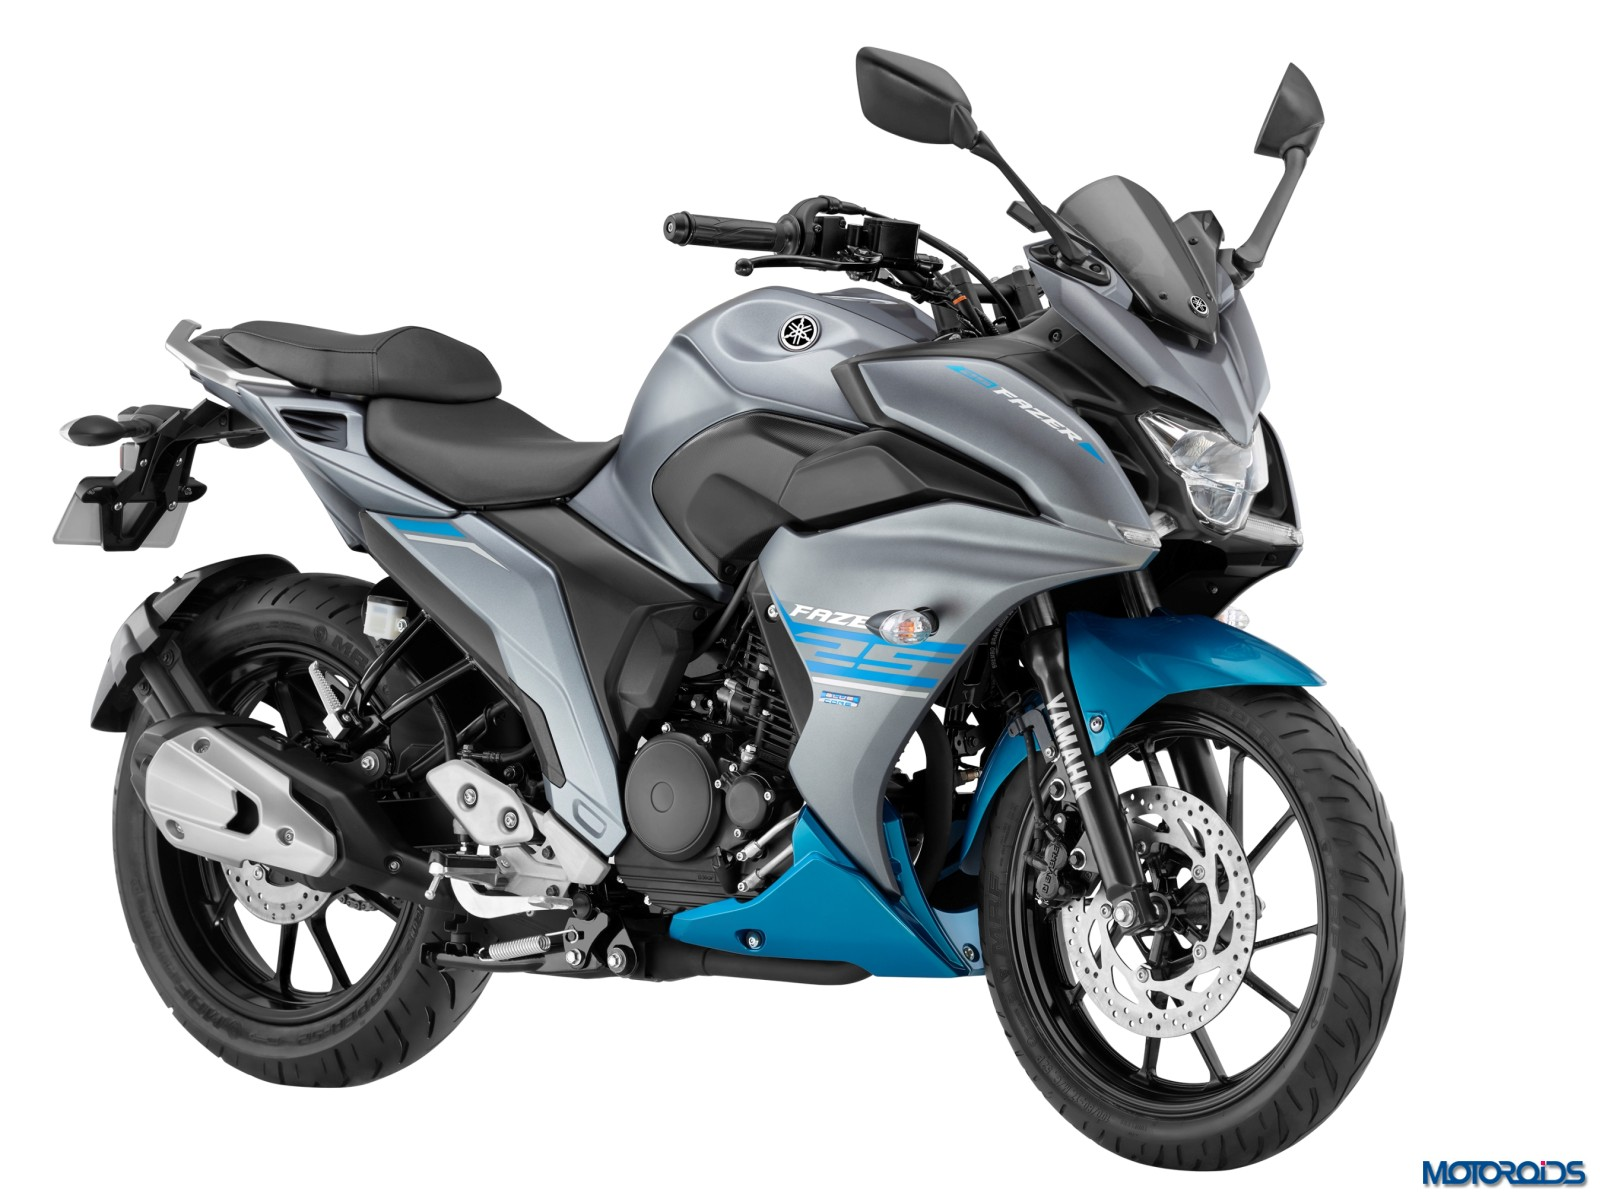 yamaha fazer 25 launched in india official release and all you need to know motoroids